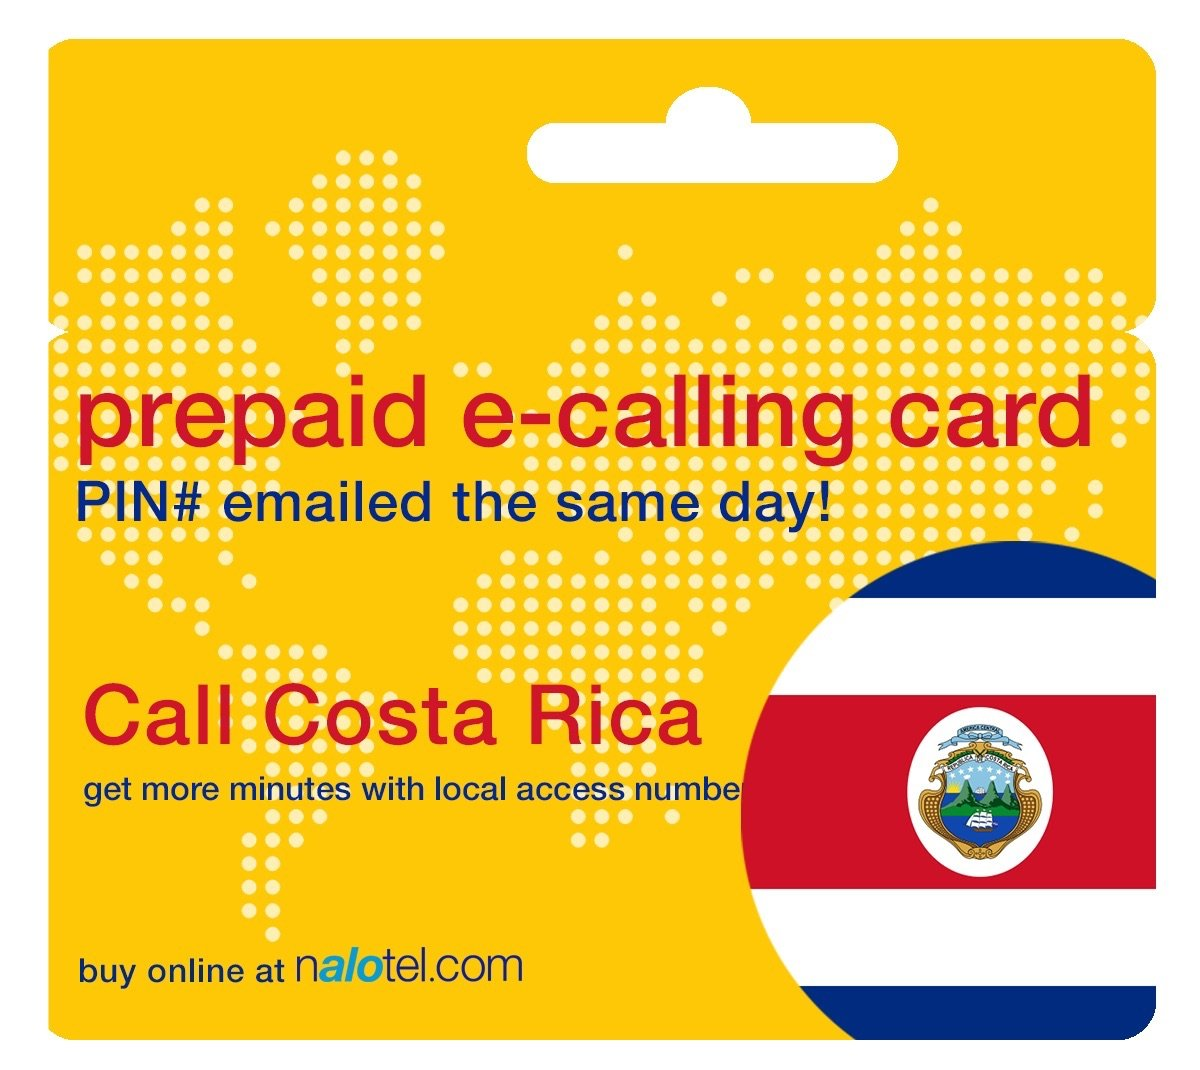 Prepaid Phone Card - Cheap International E-Calling Card $10 for Costa Rica with same day emailed PIN, no postage necessary